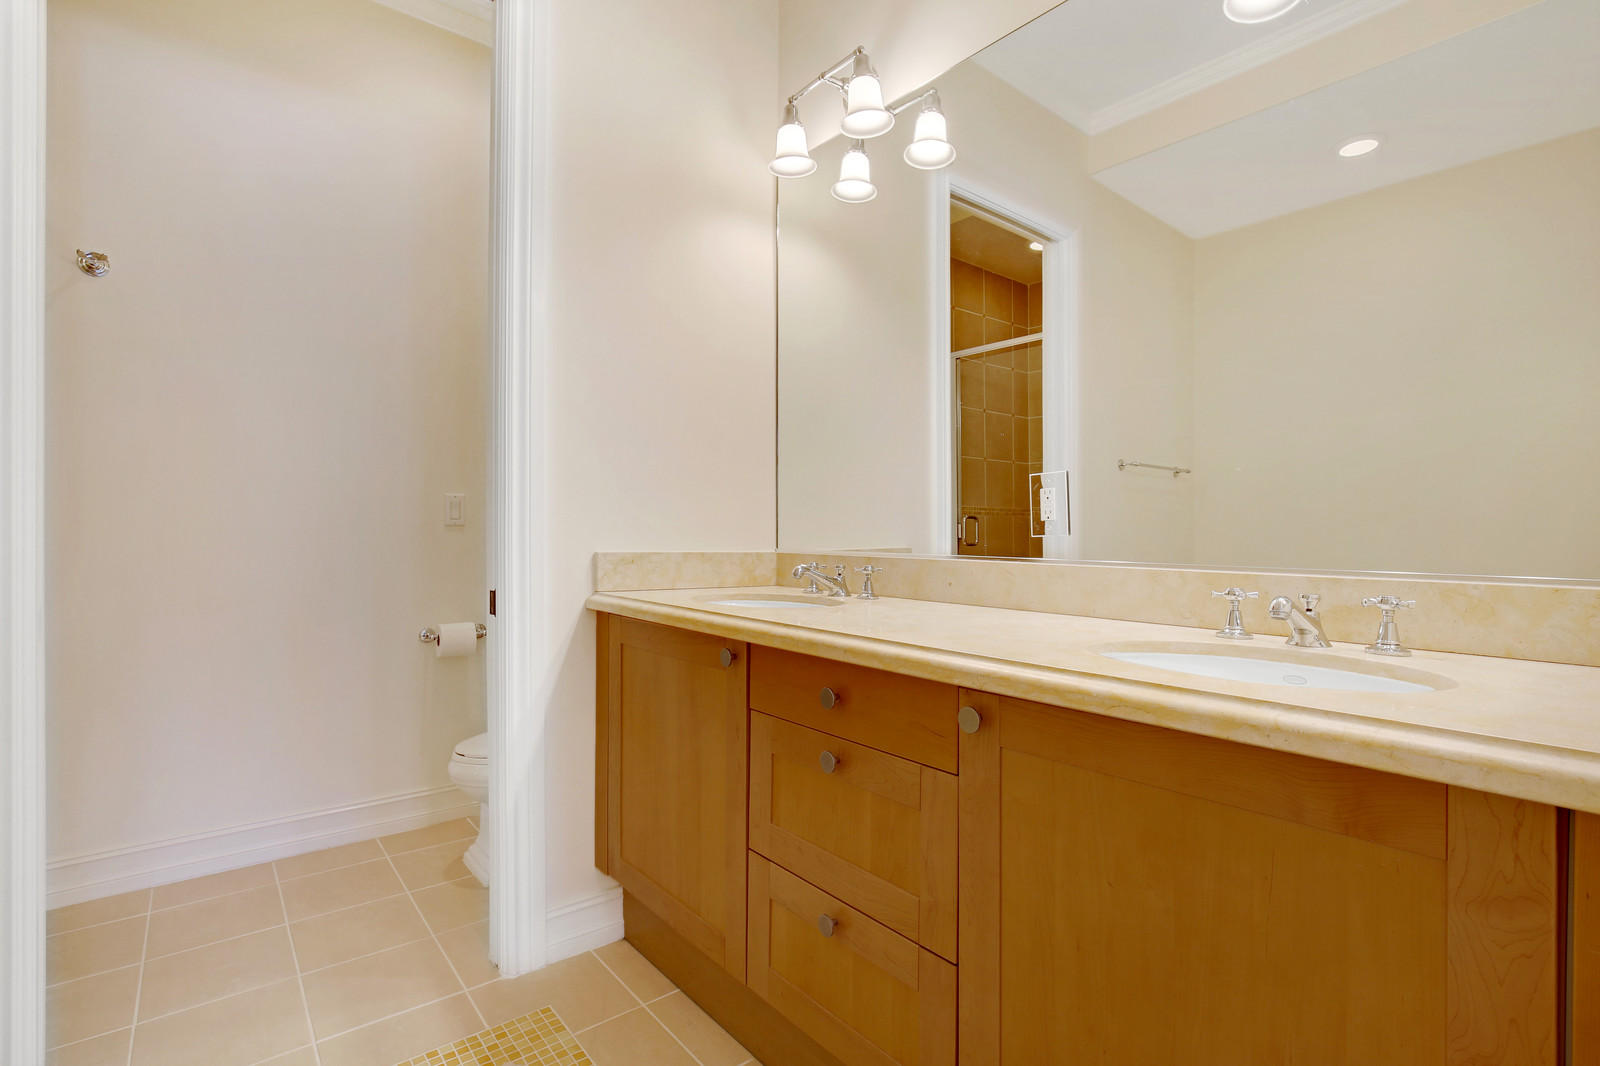 MALLORY SQUARE HOMES FOR SALE